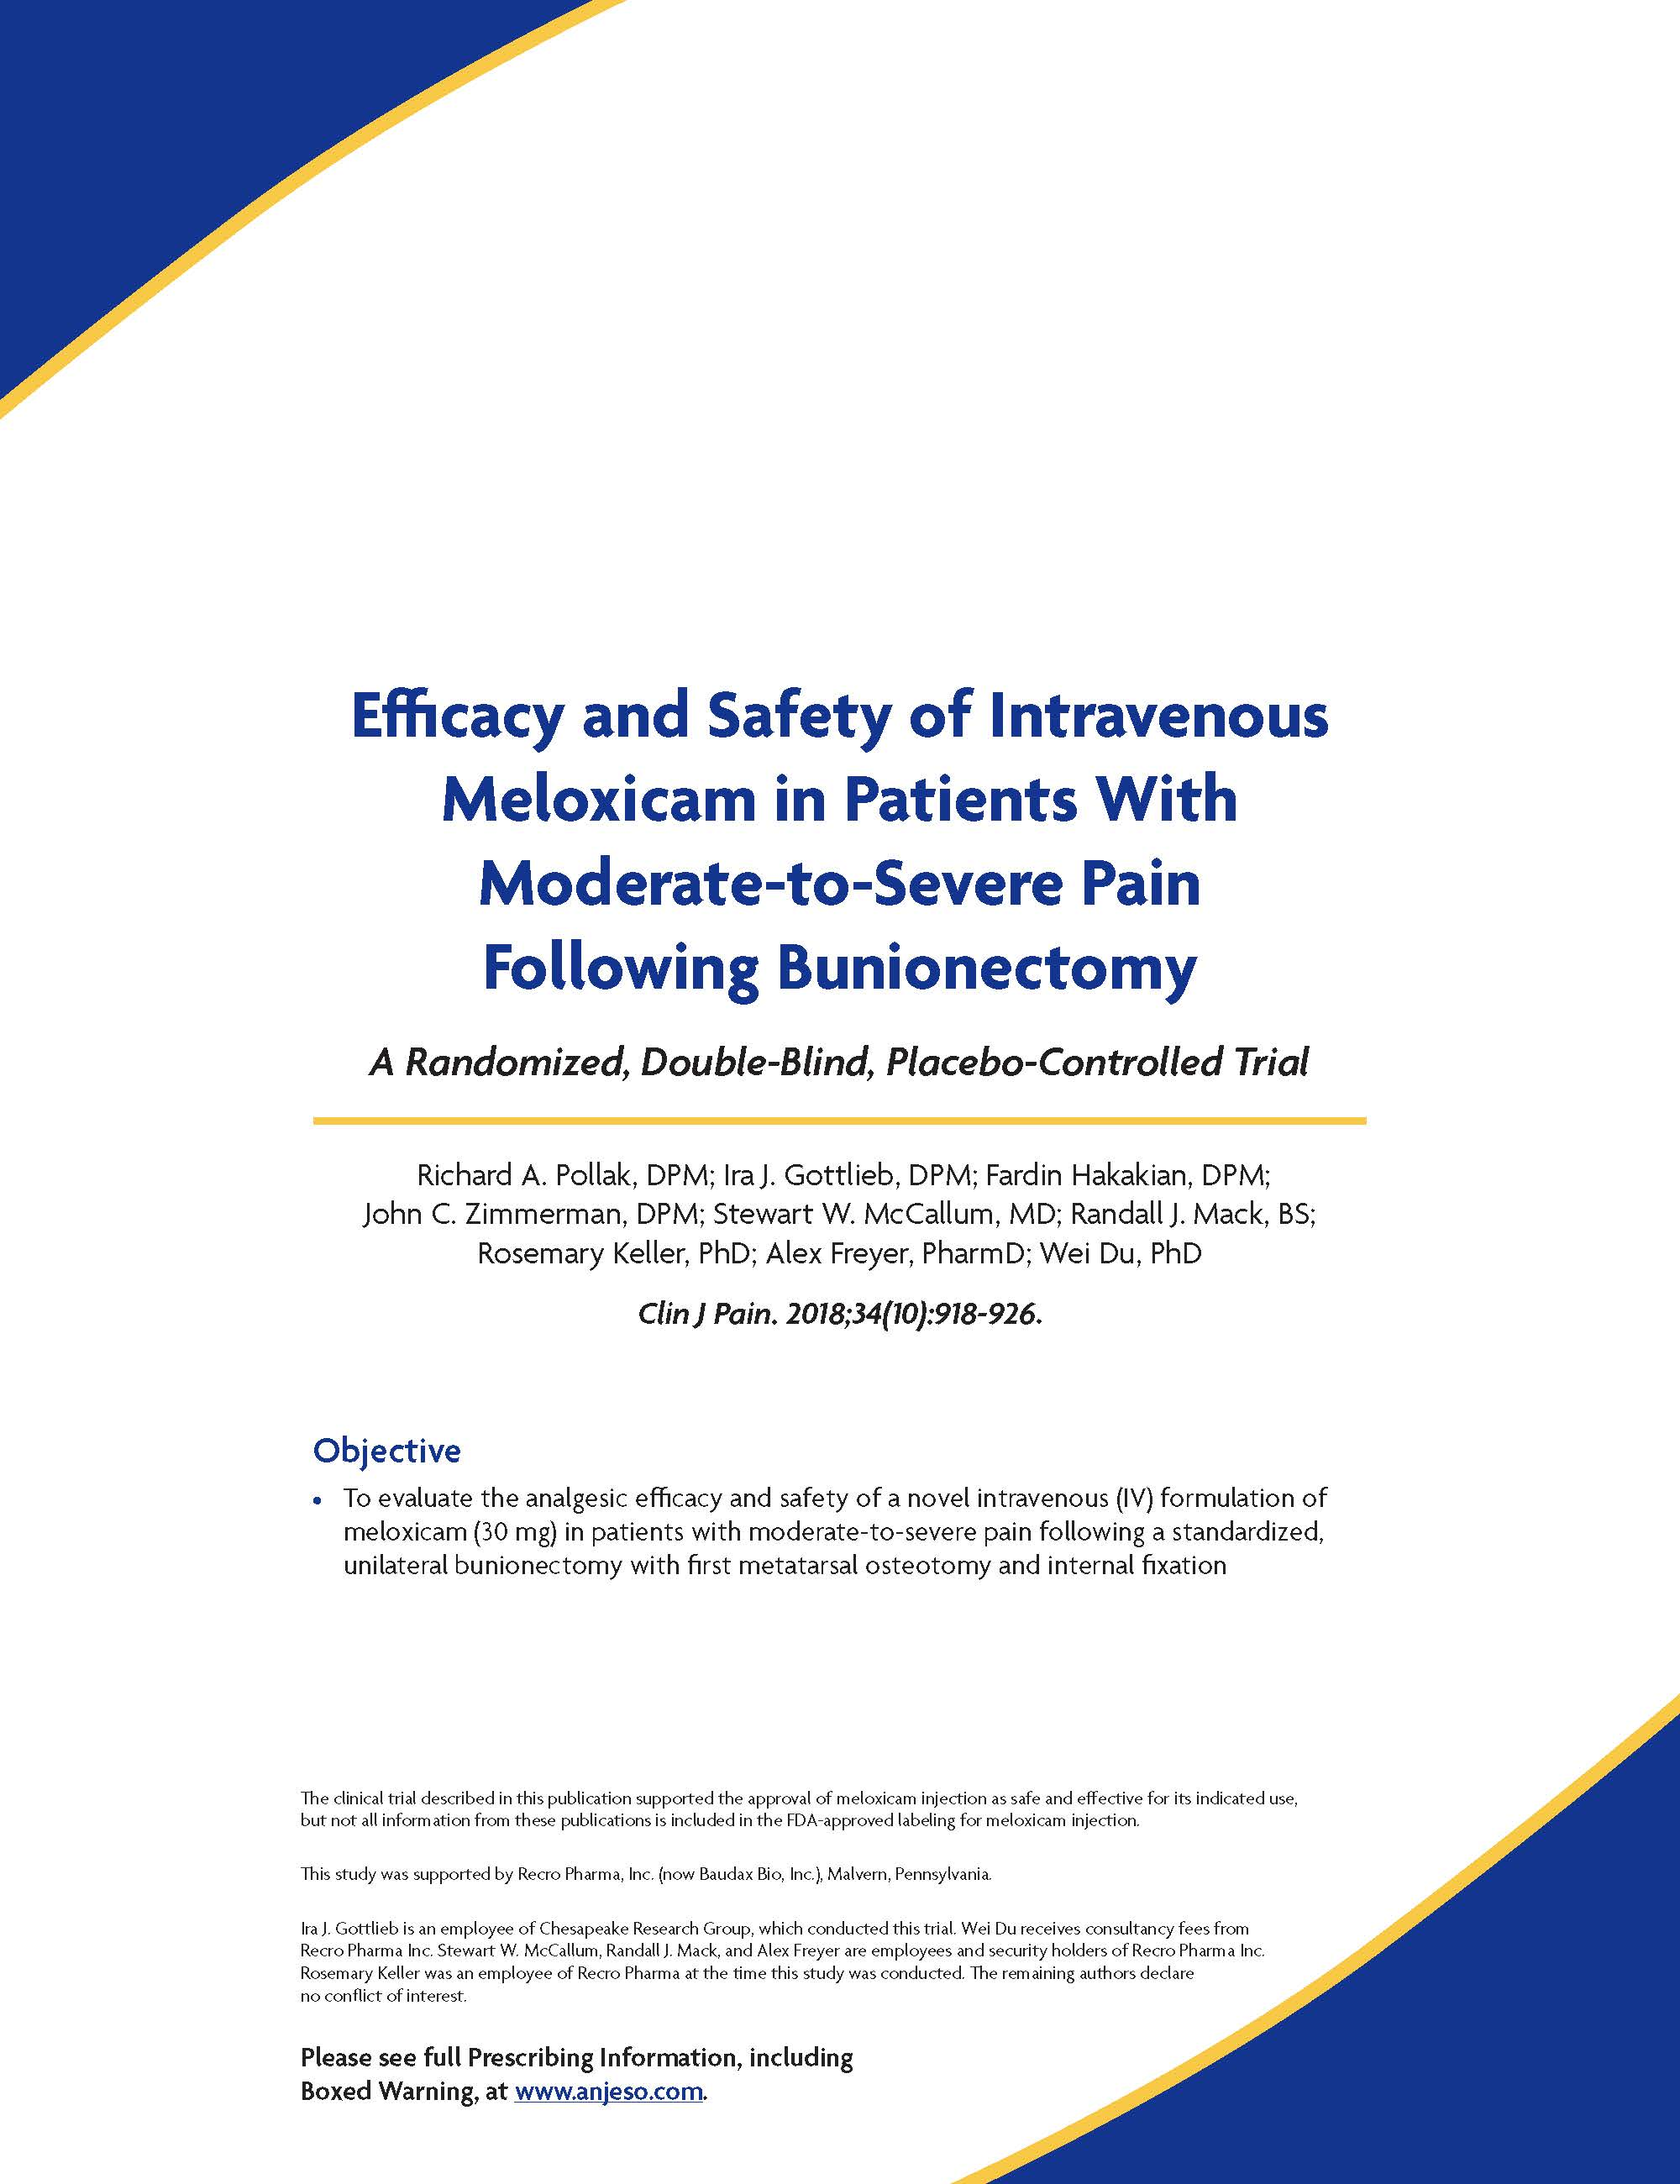 Efficacy and Safety of Intravenous Meloxicam in Patients With Moderate-to-Severe Pain Following Bunionectomy thumbnail